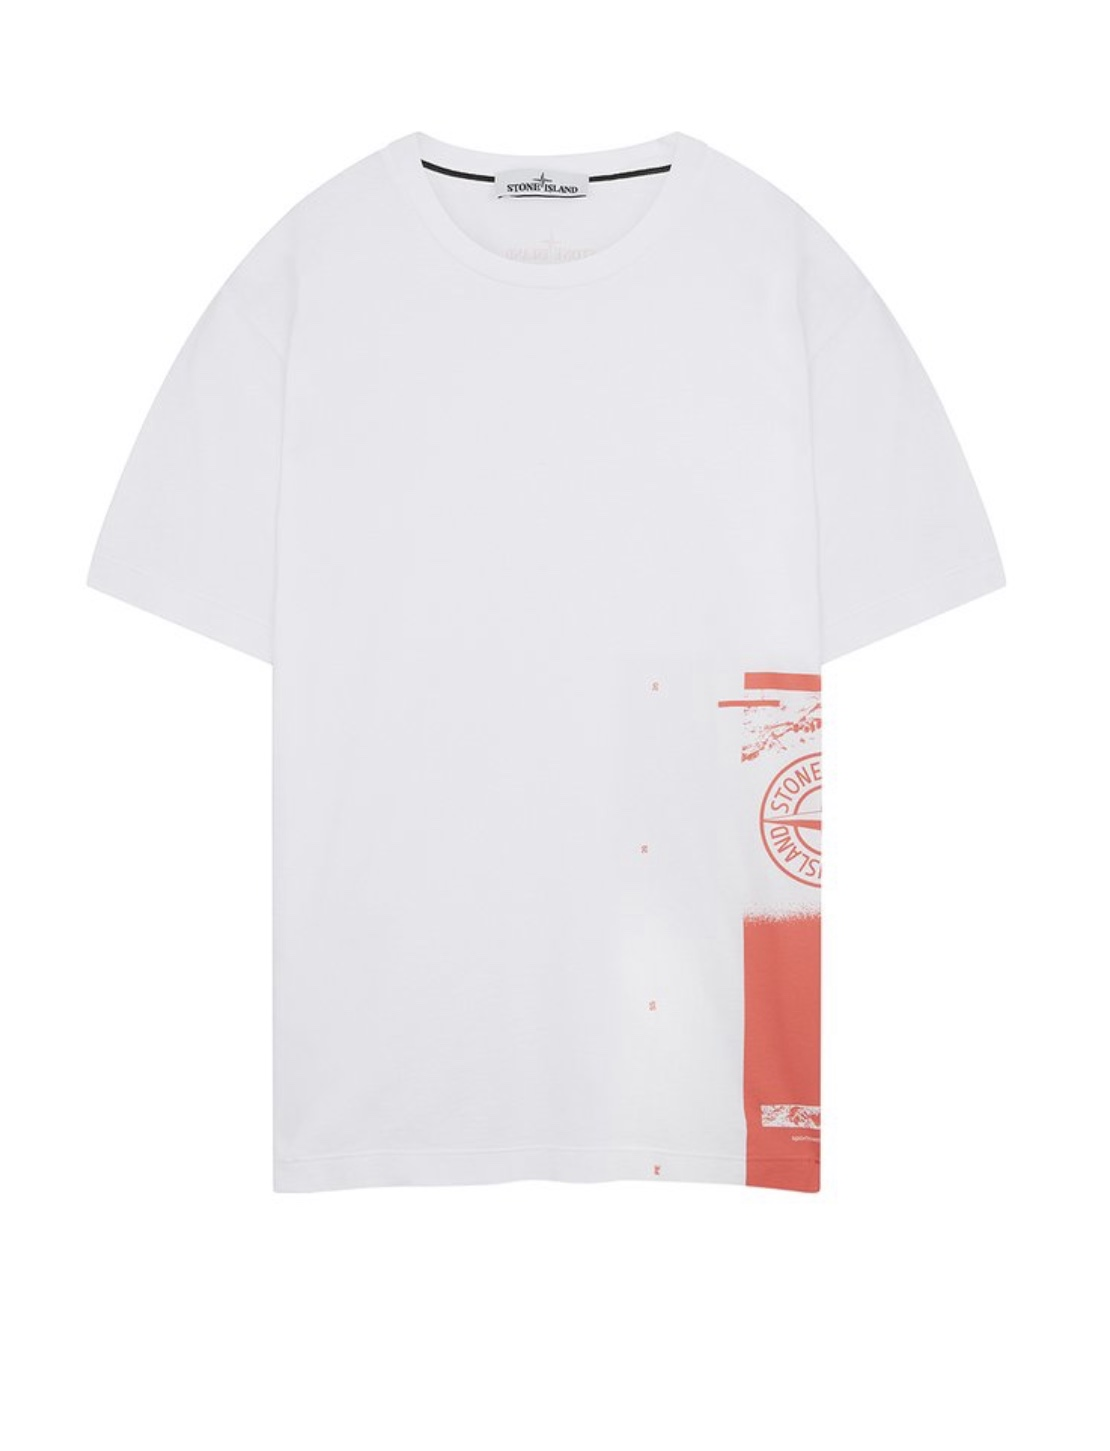 Drone One T-Shirt